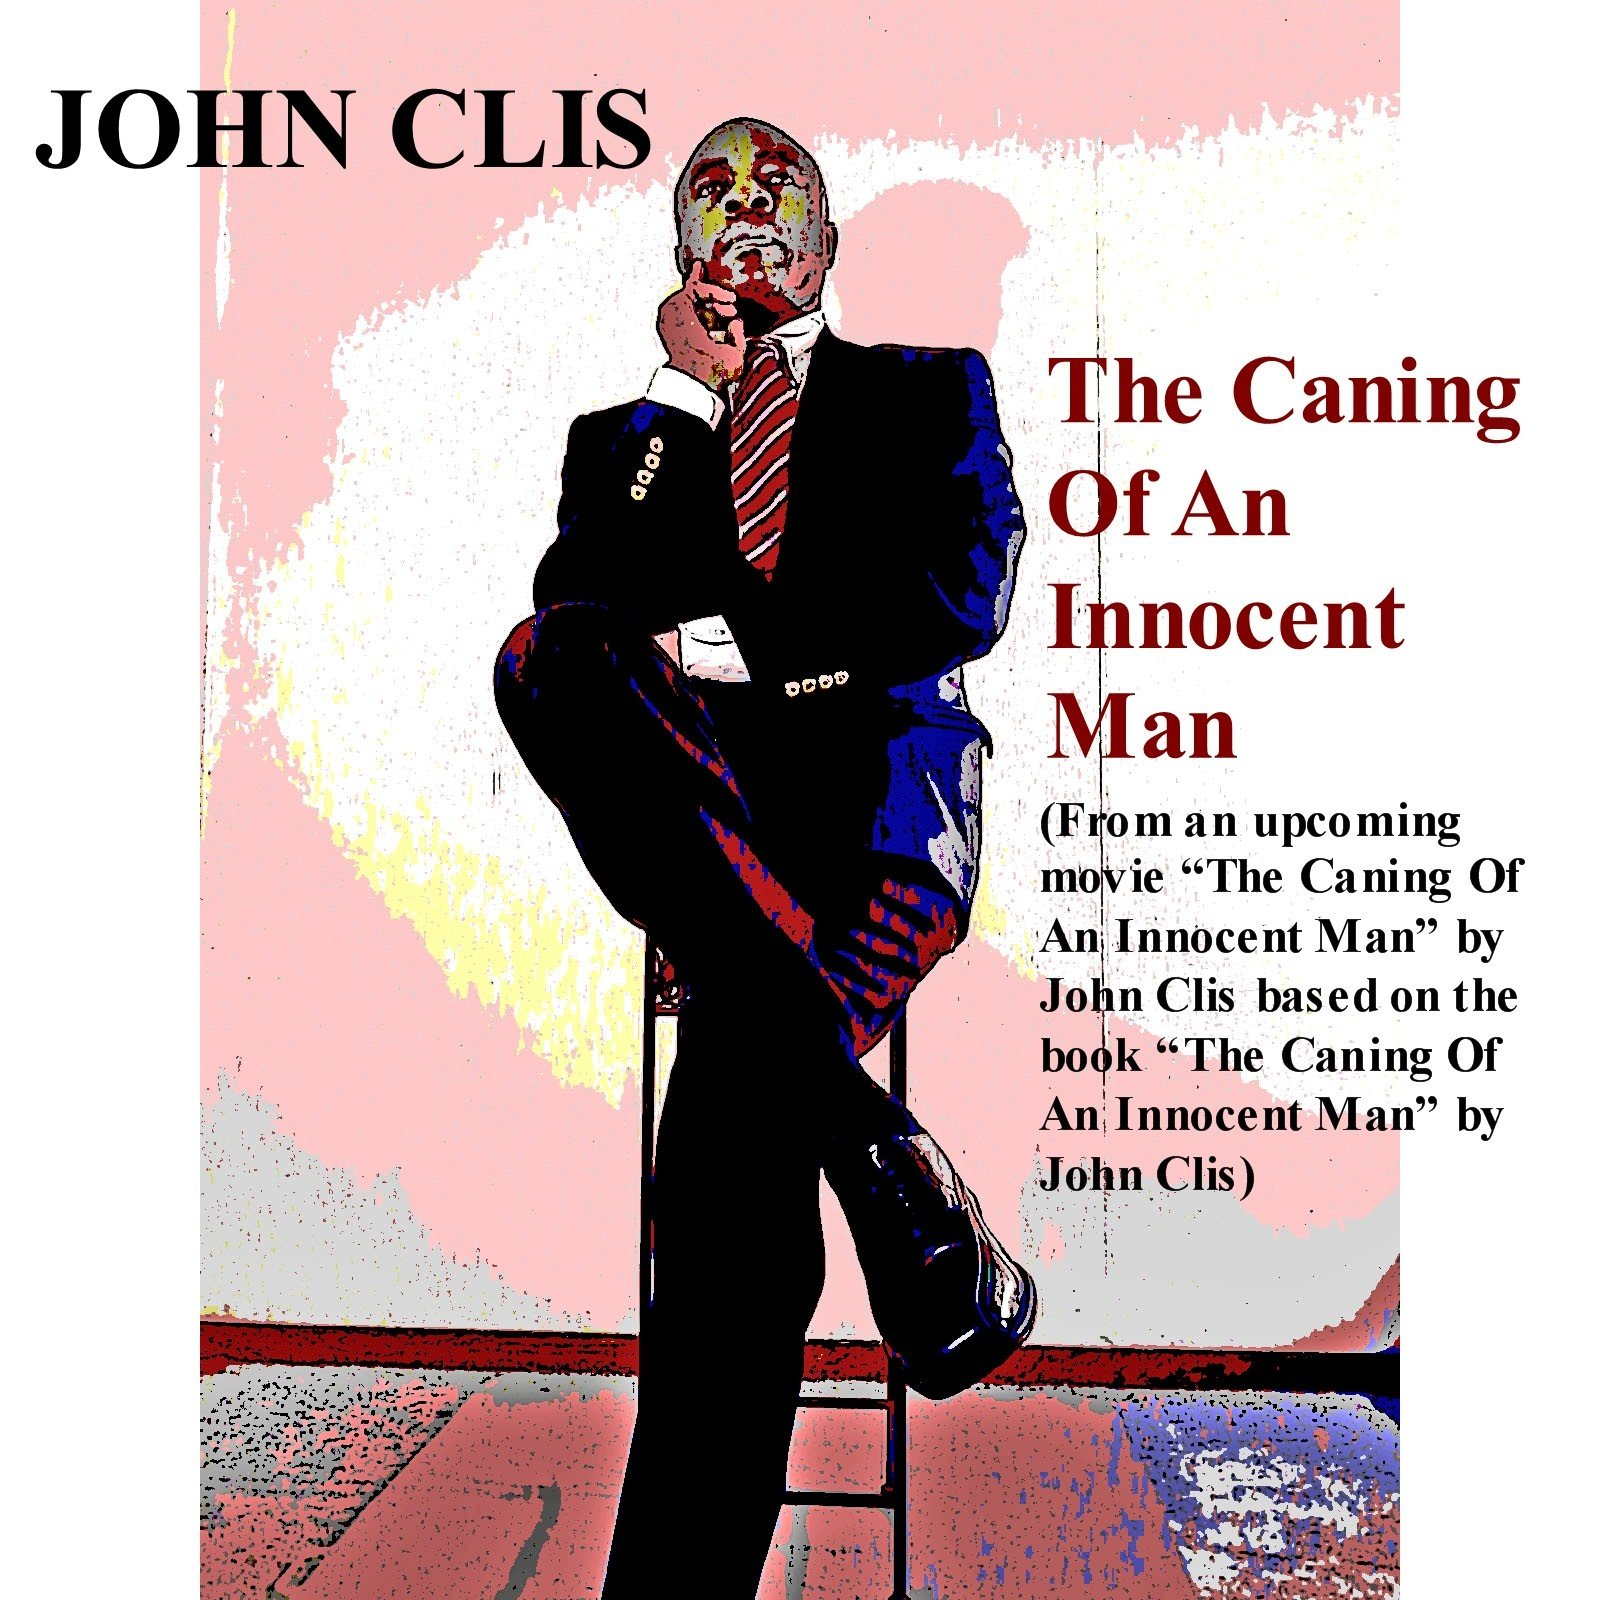 https://0201.nccdn.net/1_2/000/000/098/039/John-Clis---The-Caning-Of-An-Innocent-Man---Pic-1-1600x1600.jpg